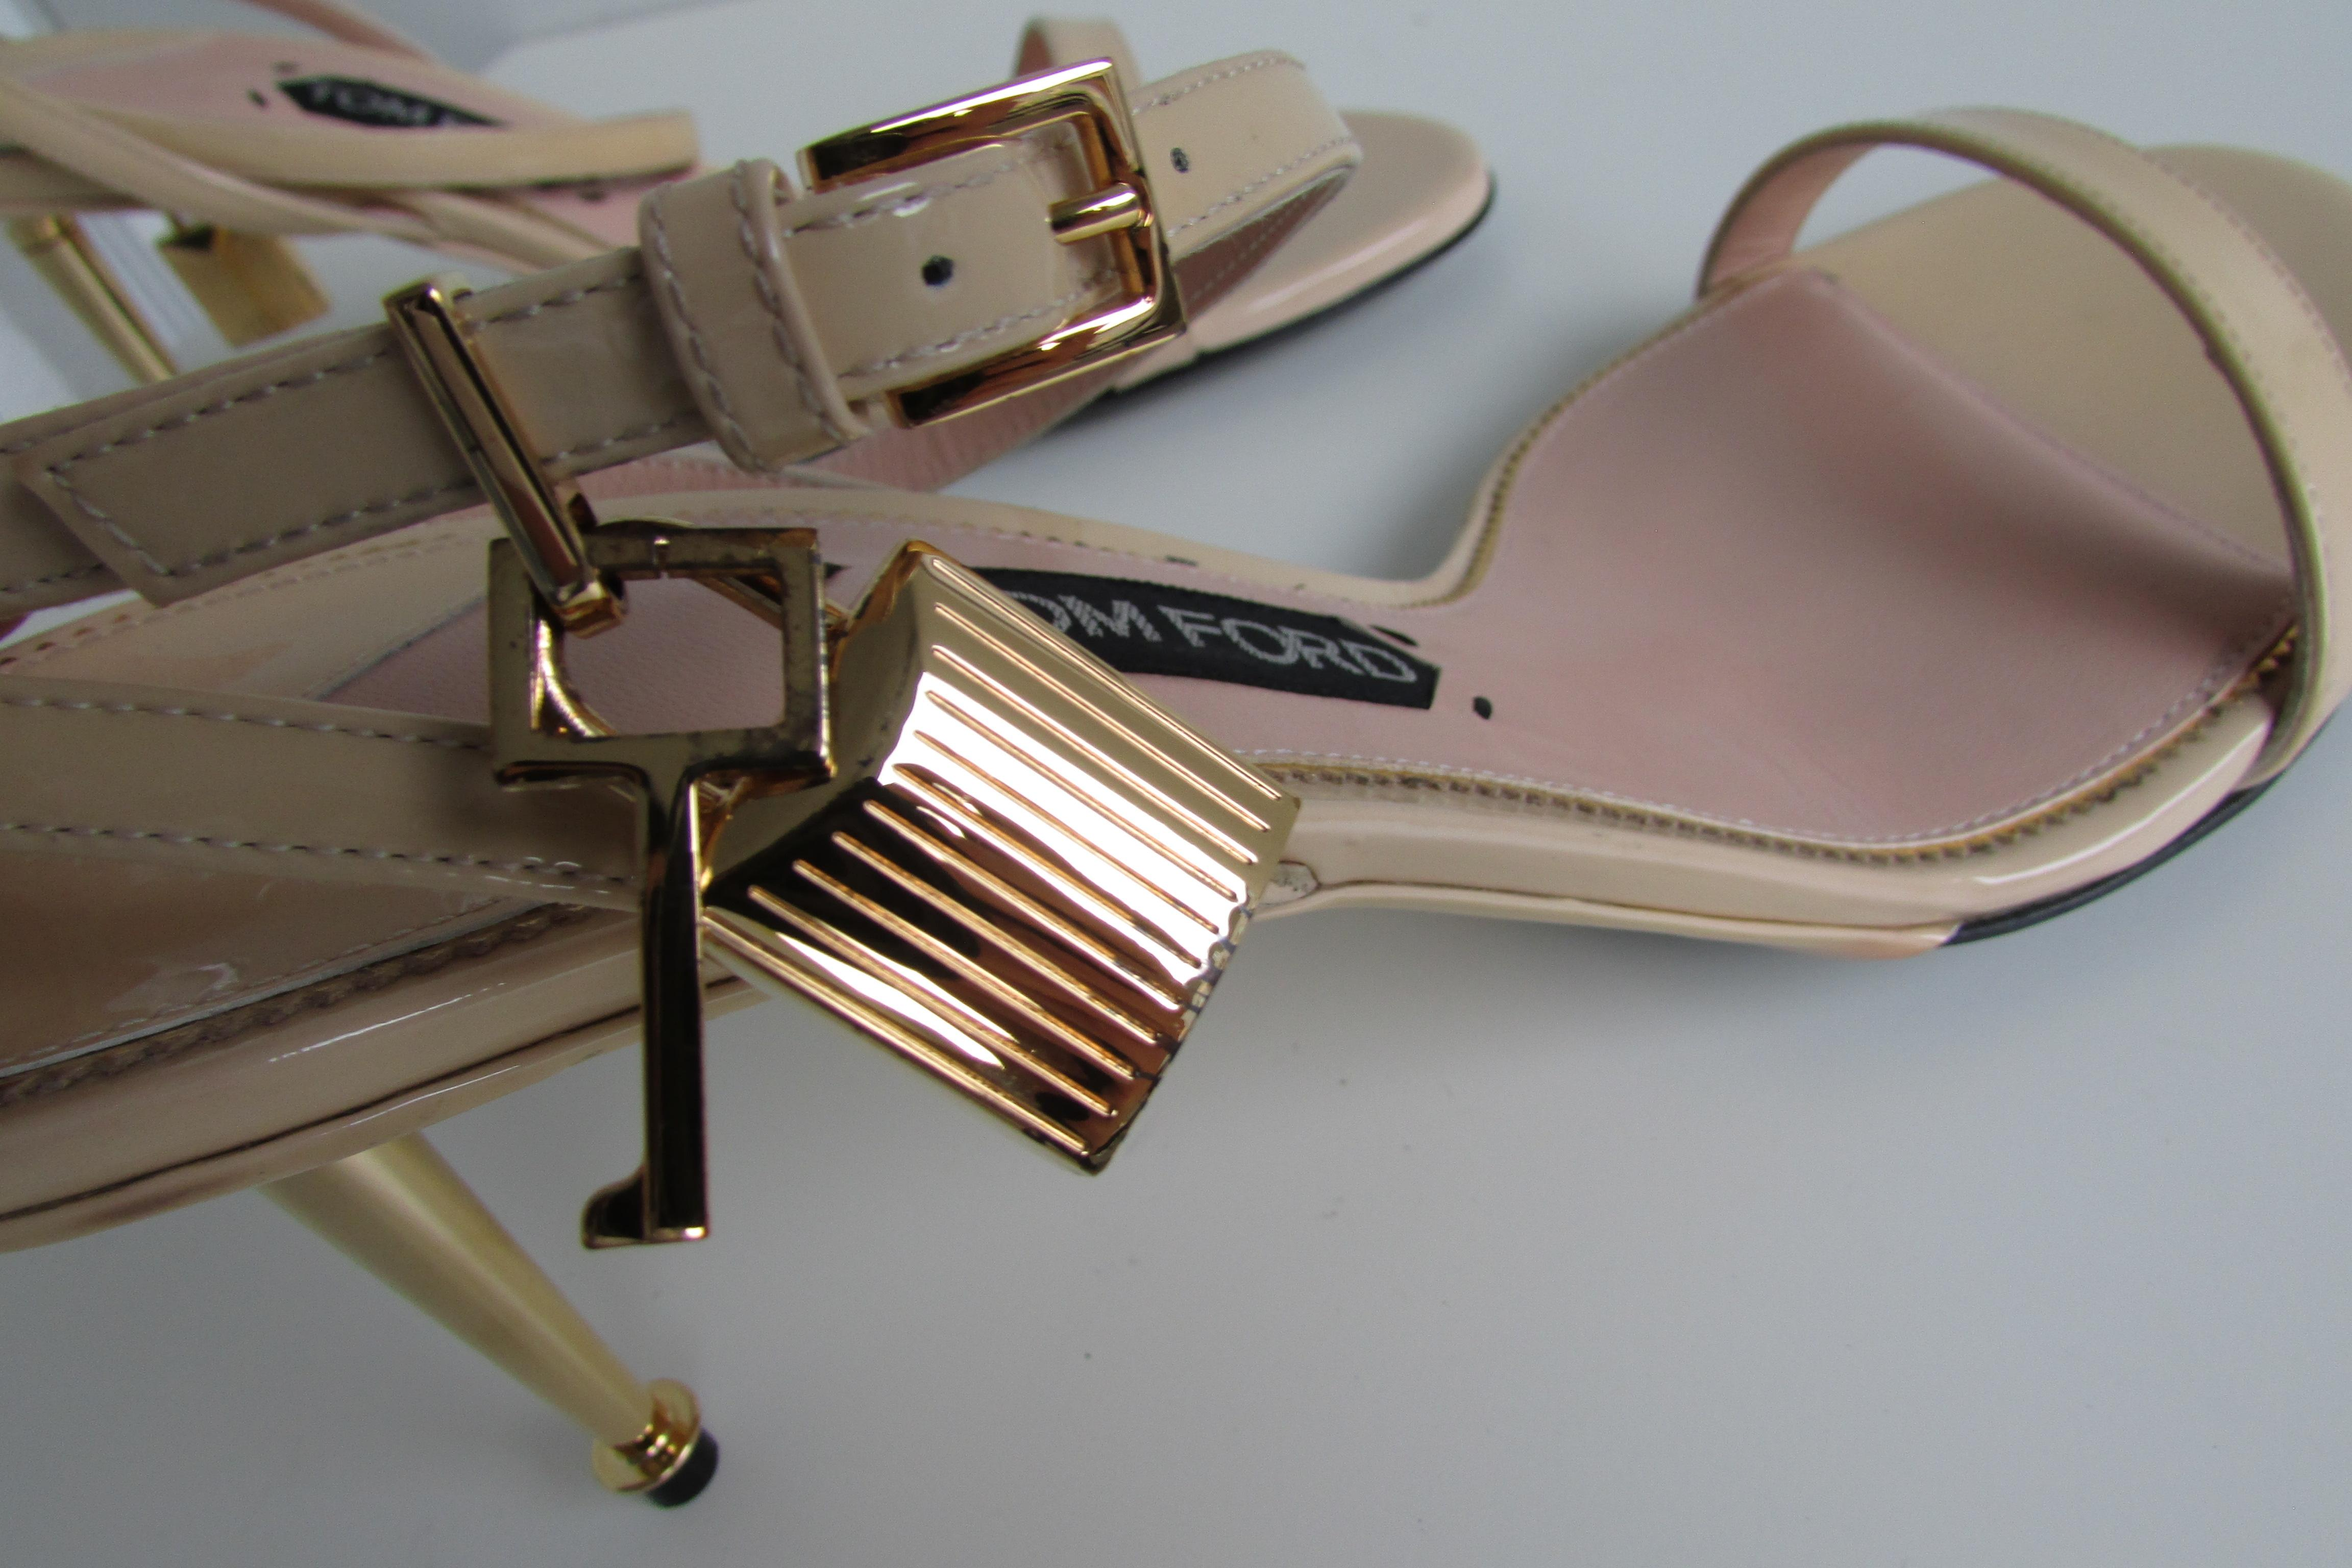 6ae55f443dd7a Tom Ford Nude Ankle-lock Padlock Sandals Size EU 41 41 41 (Approx ...